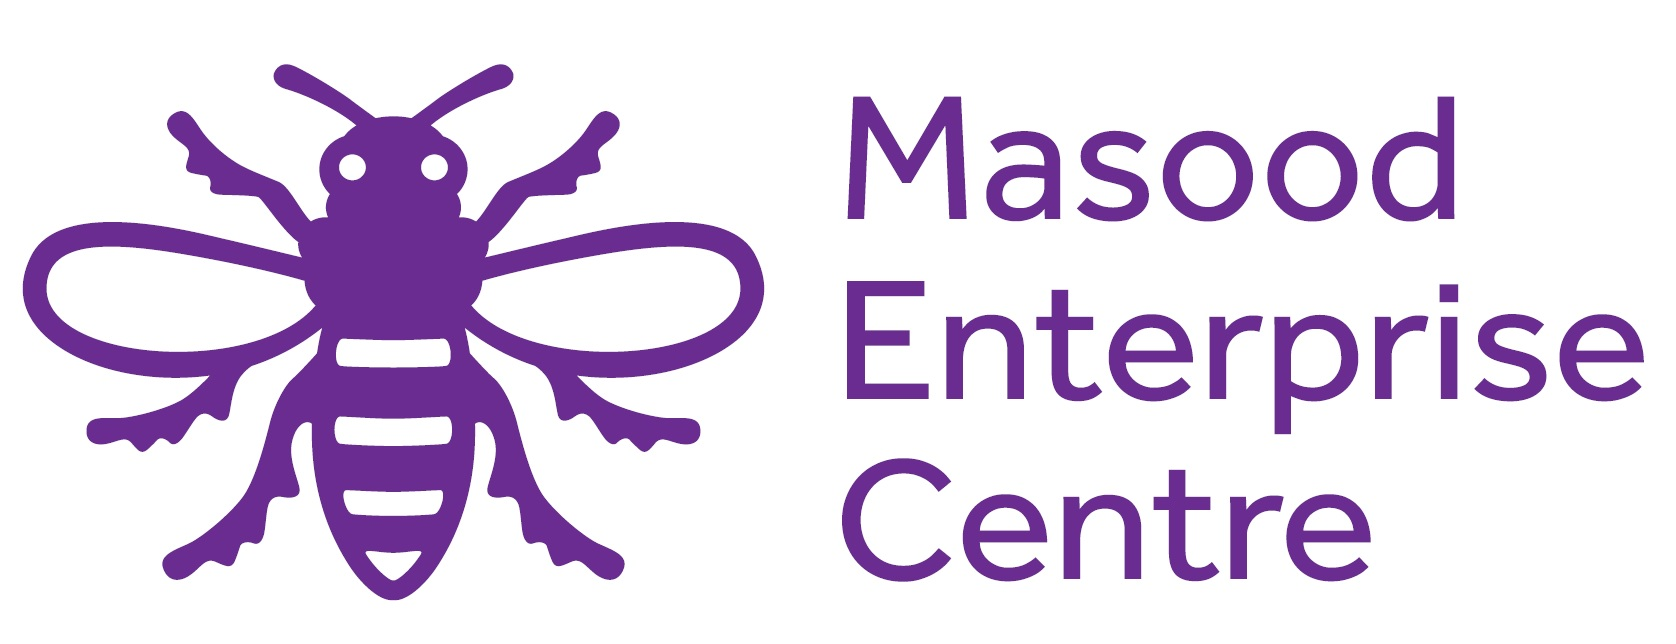 The Masood Enterprise Centre at The University of Manchester